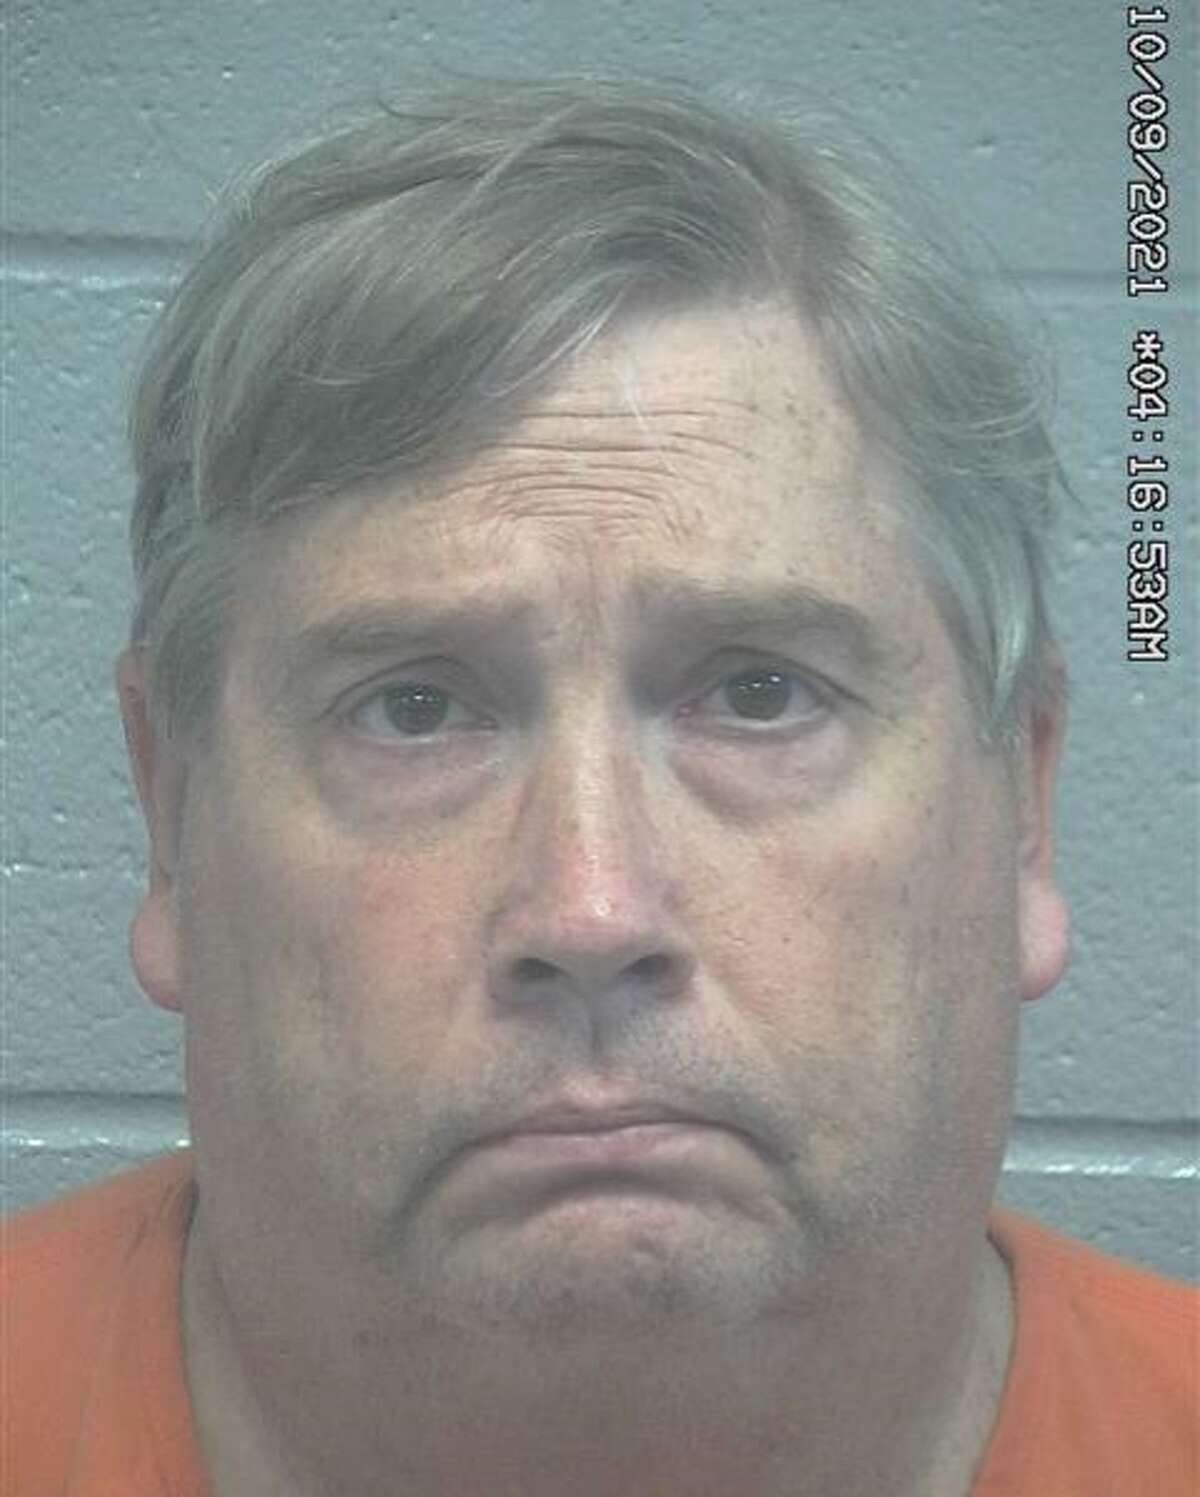 Jeffrey Marmaduke Johnston, a Midland oil and gas attorney, was arrested last Thursday after allegedly threatening to kill TxDOT employees who were redirecting traffic after a collision.